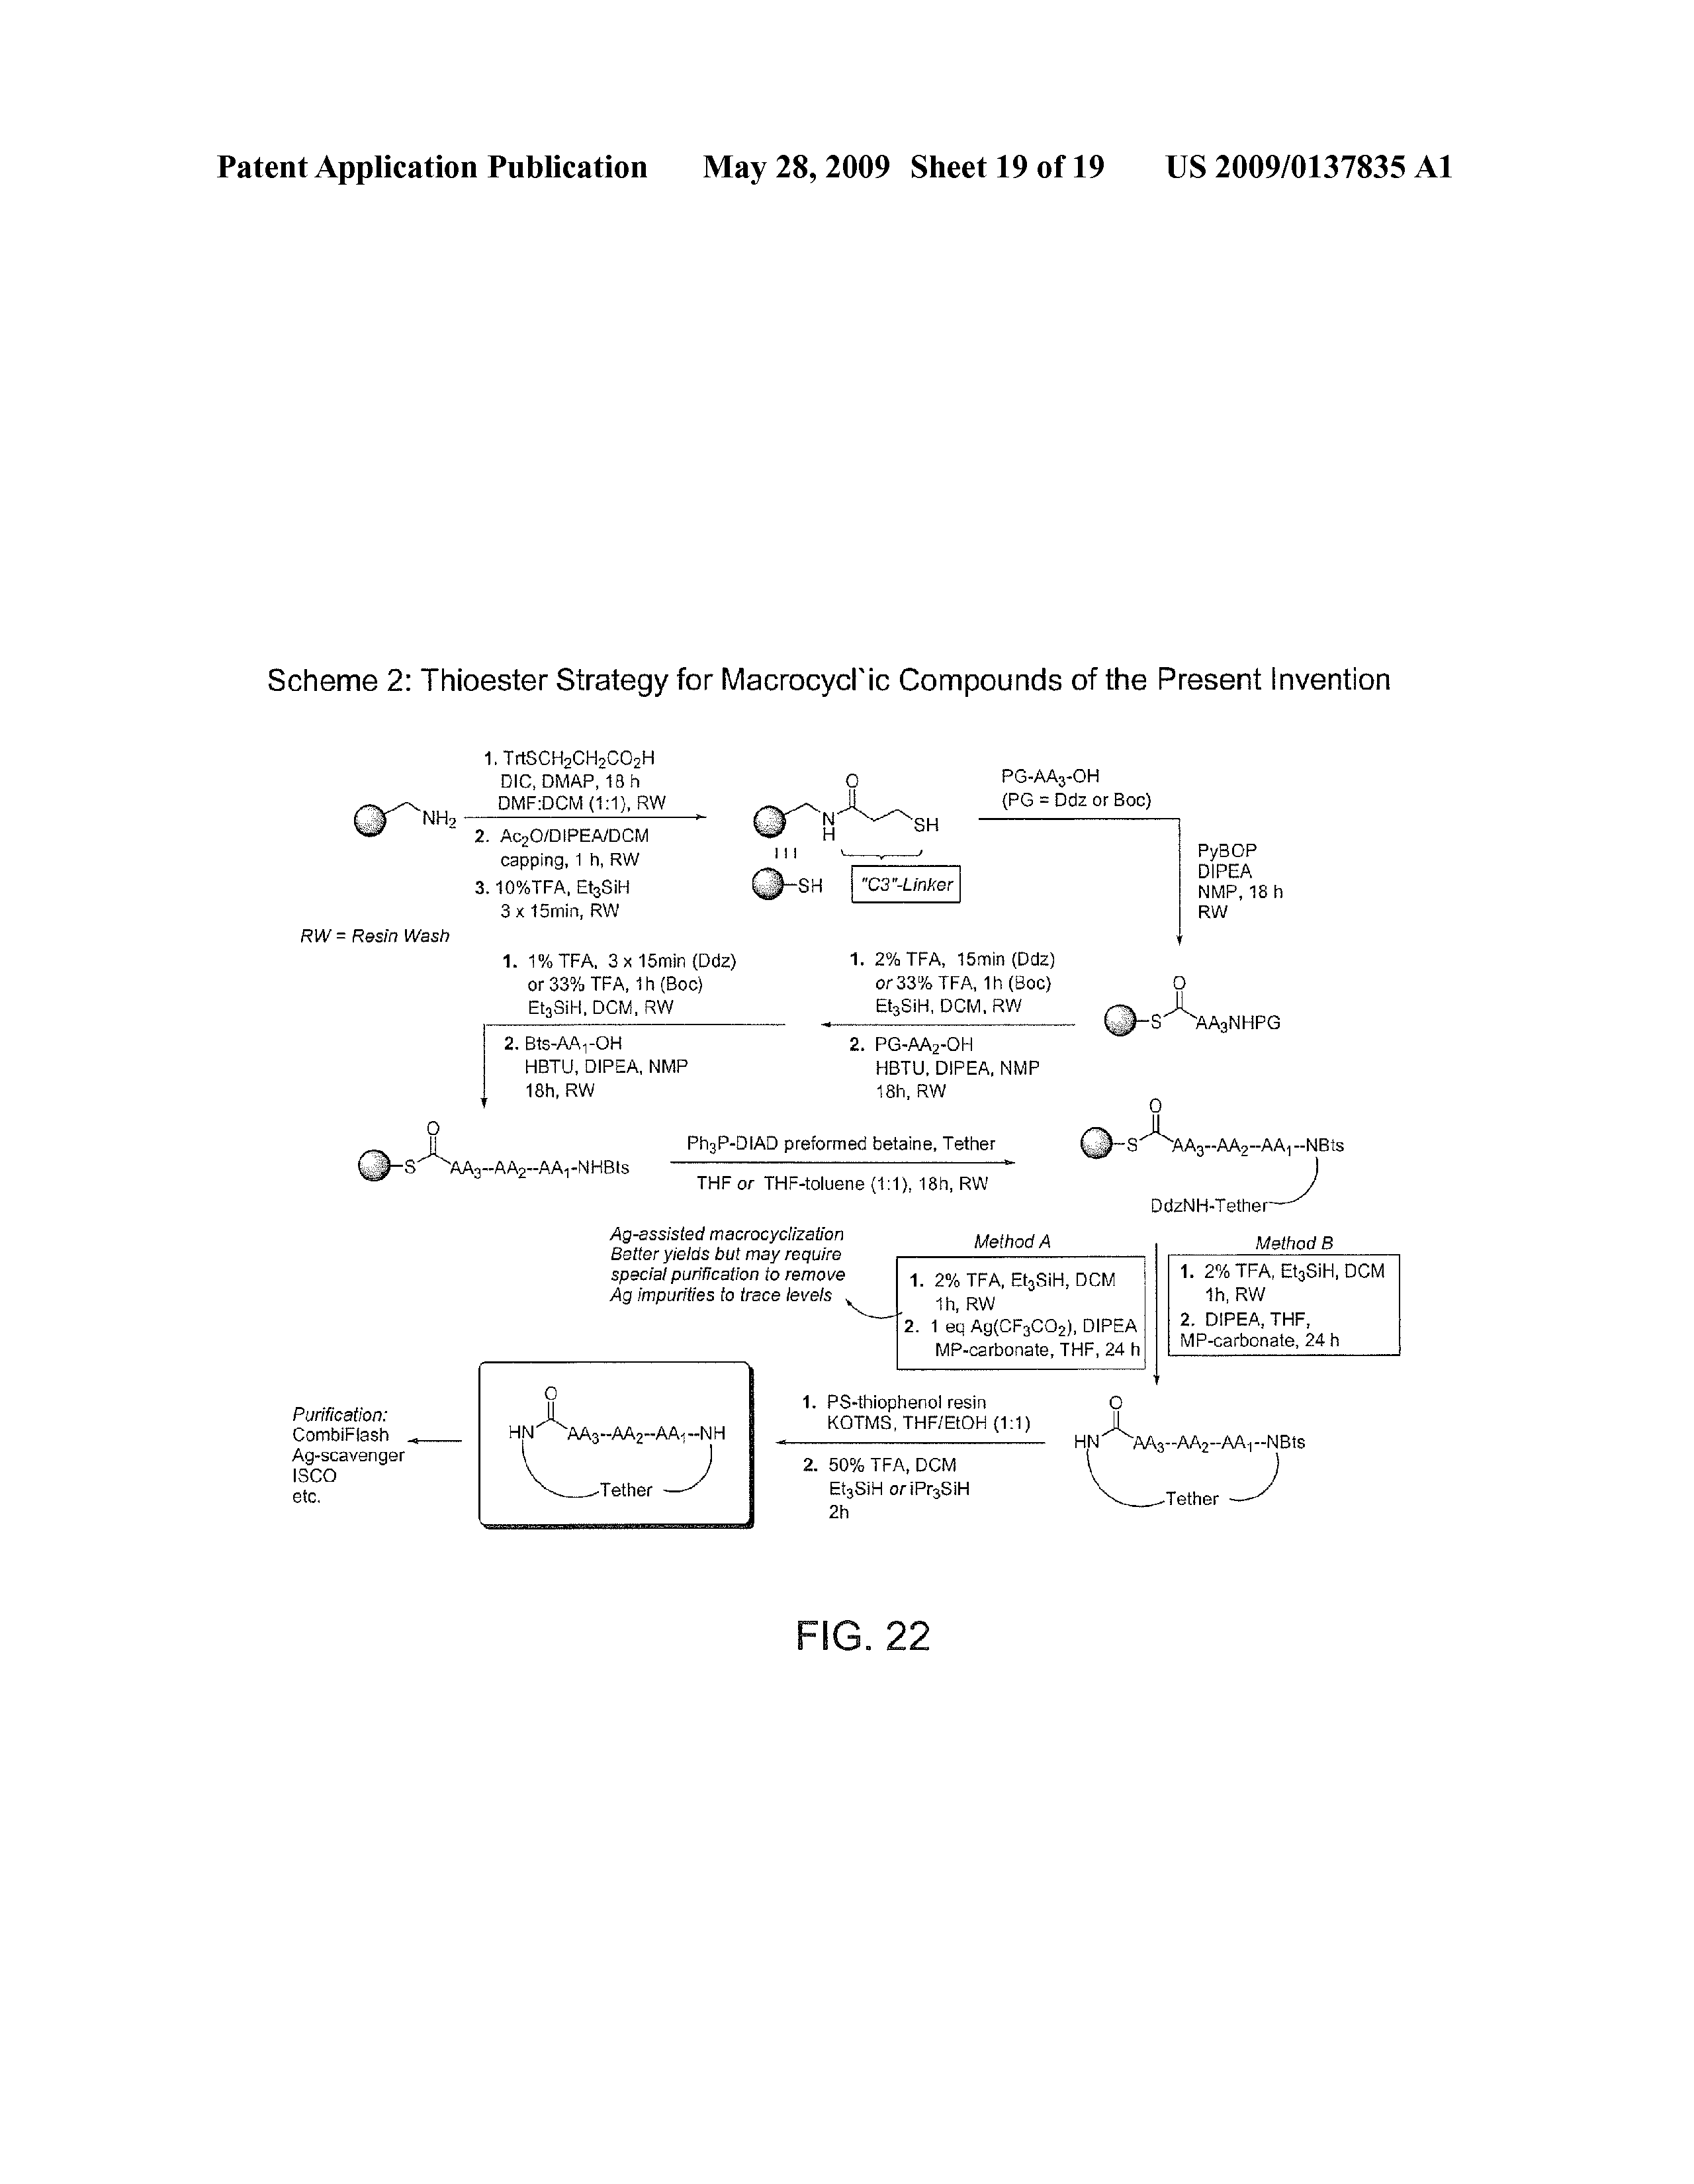 US 2009/0137835 A1 - Processes For Intermediates For Macrocyclic